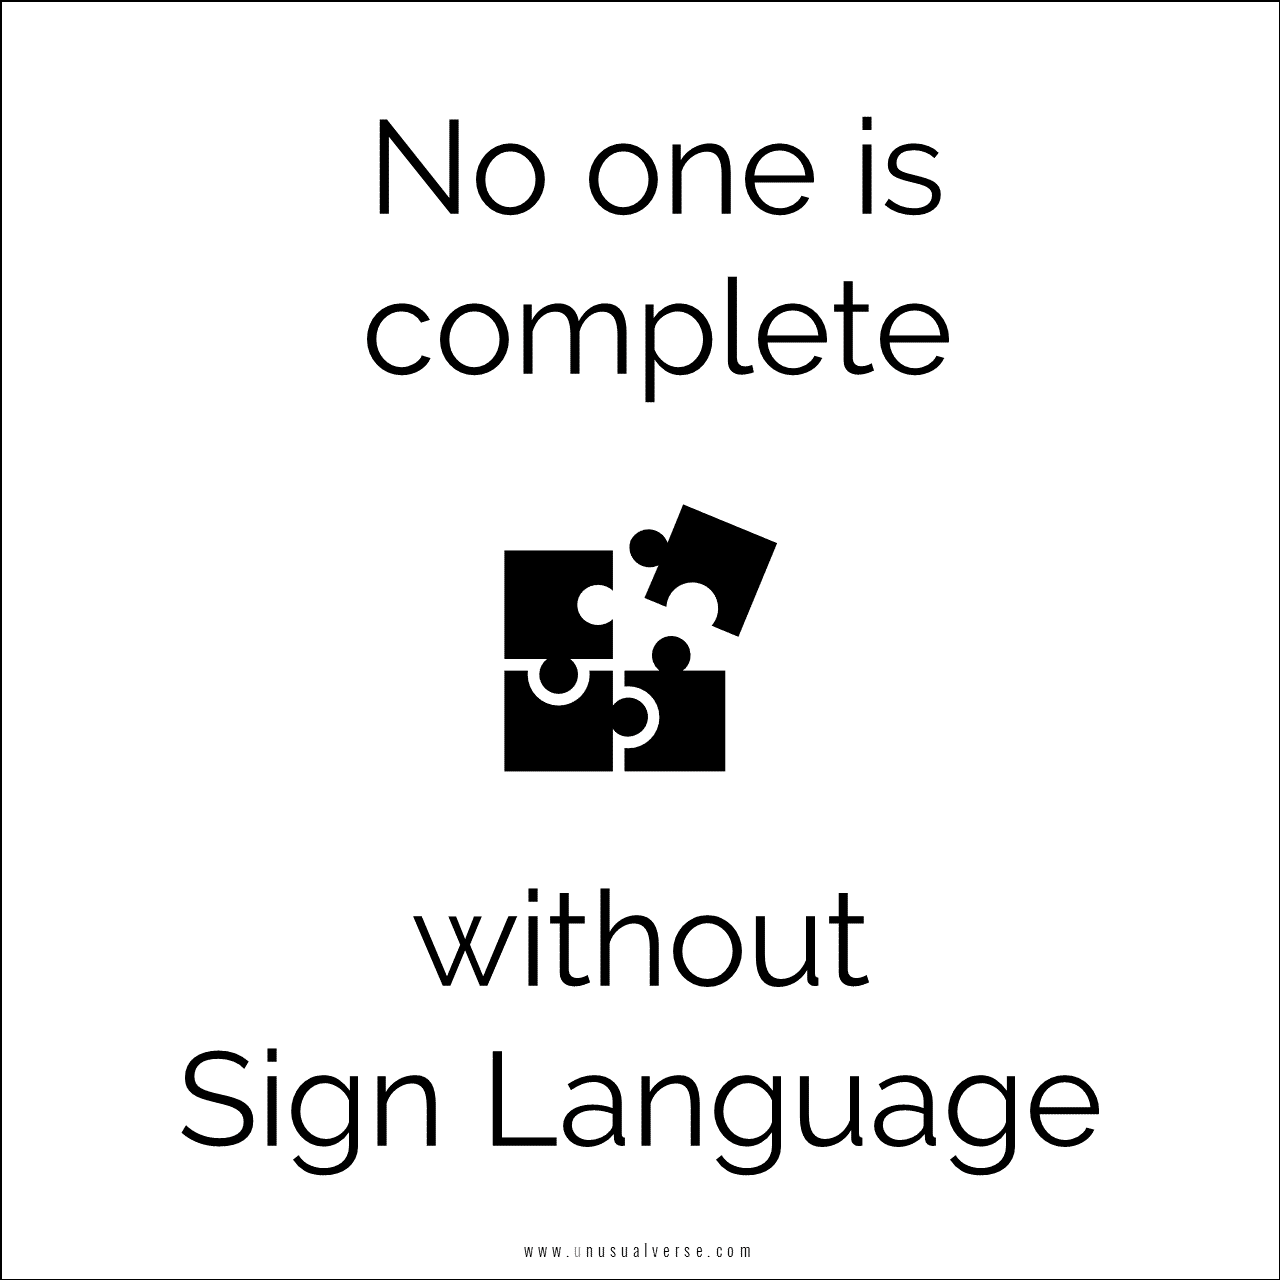 No one is complete without Sign Language